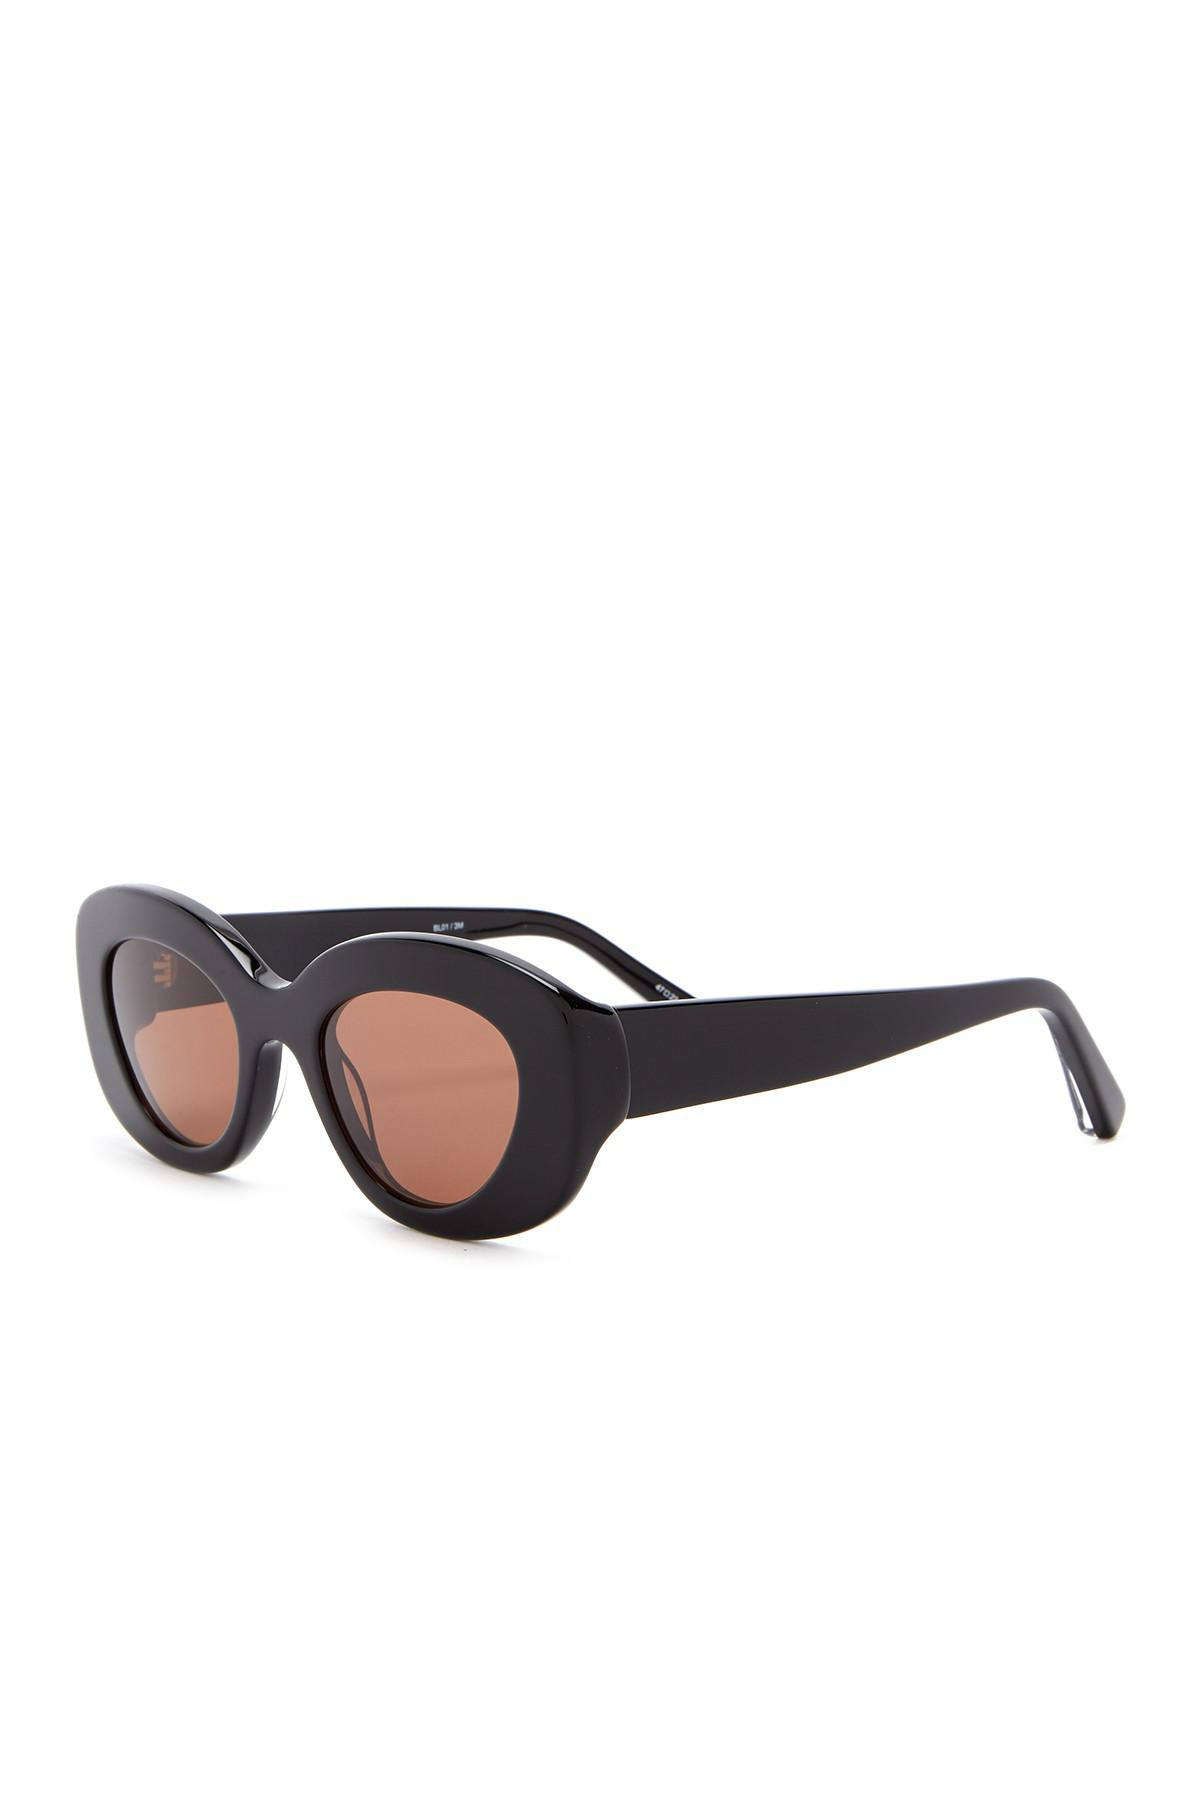 c5d2b24f6d Elizabeth and James - Multicolor Fray 47mm Oversized Oval Sunglasses -  Lyst. View fullscreen